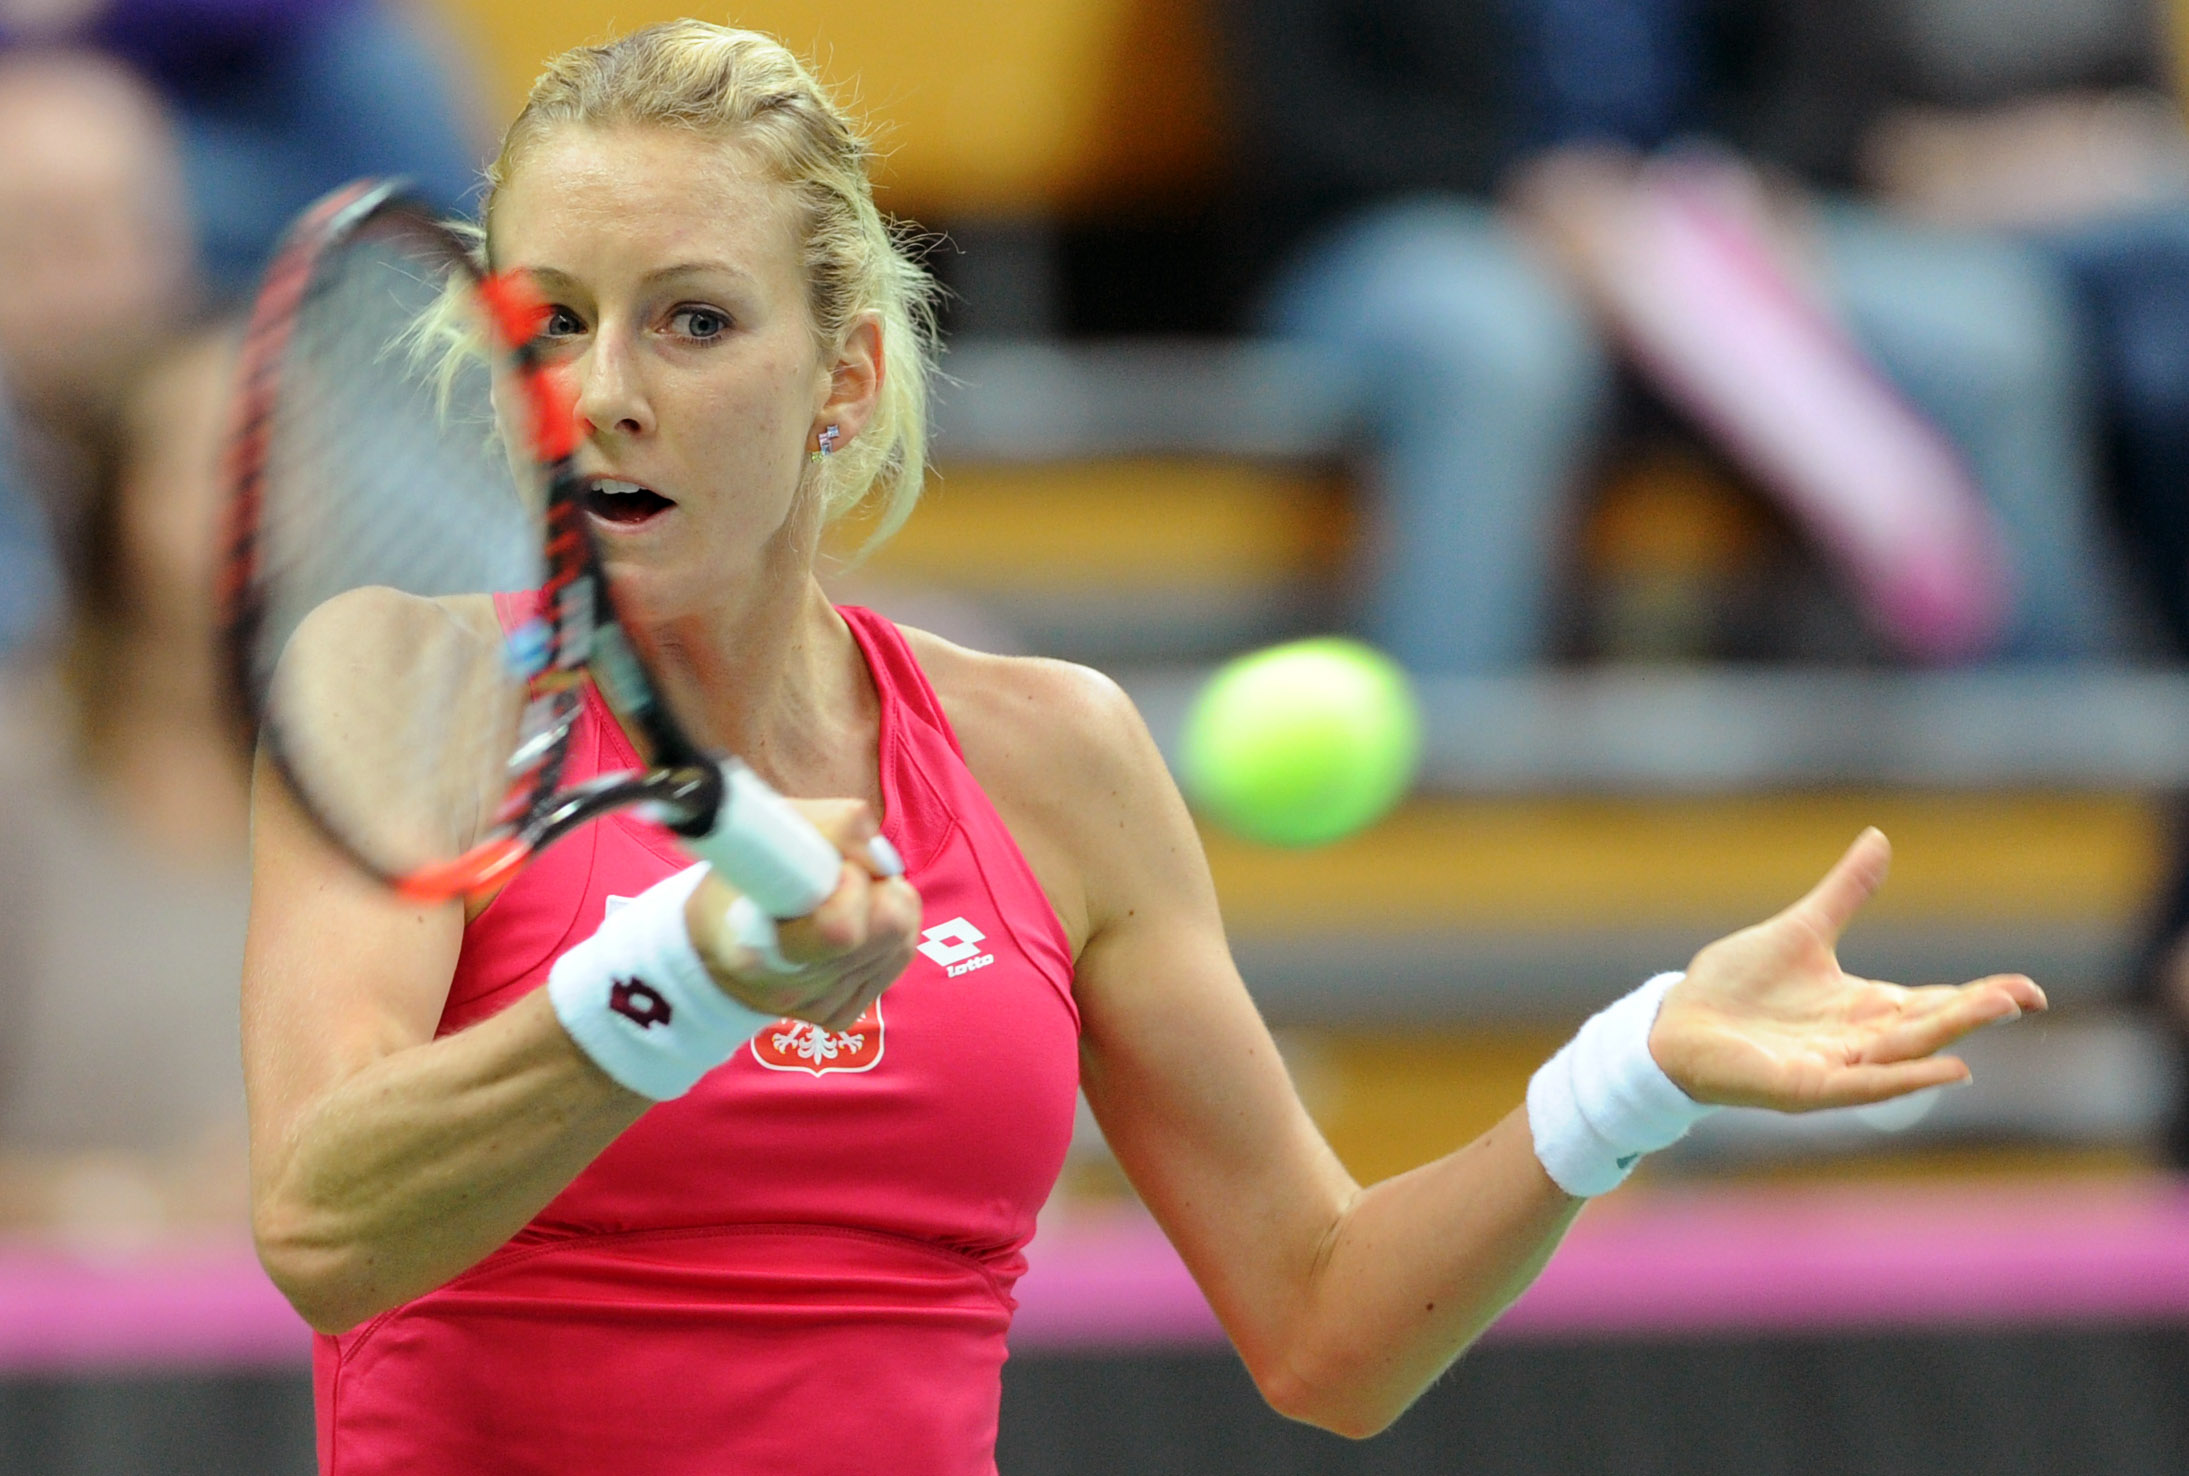 Fed Cup: Hingis loses again but Switzerland beats Poland 3-2